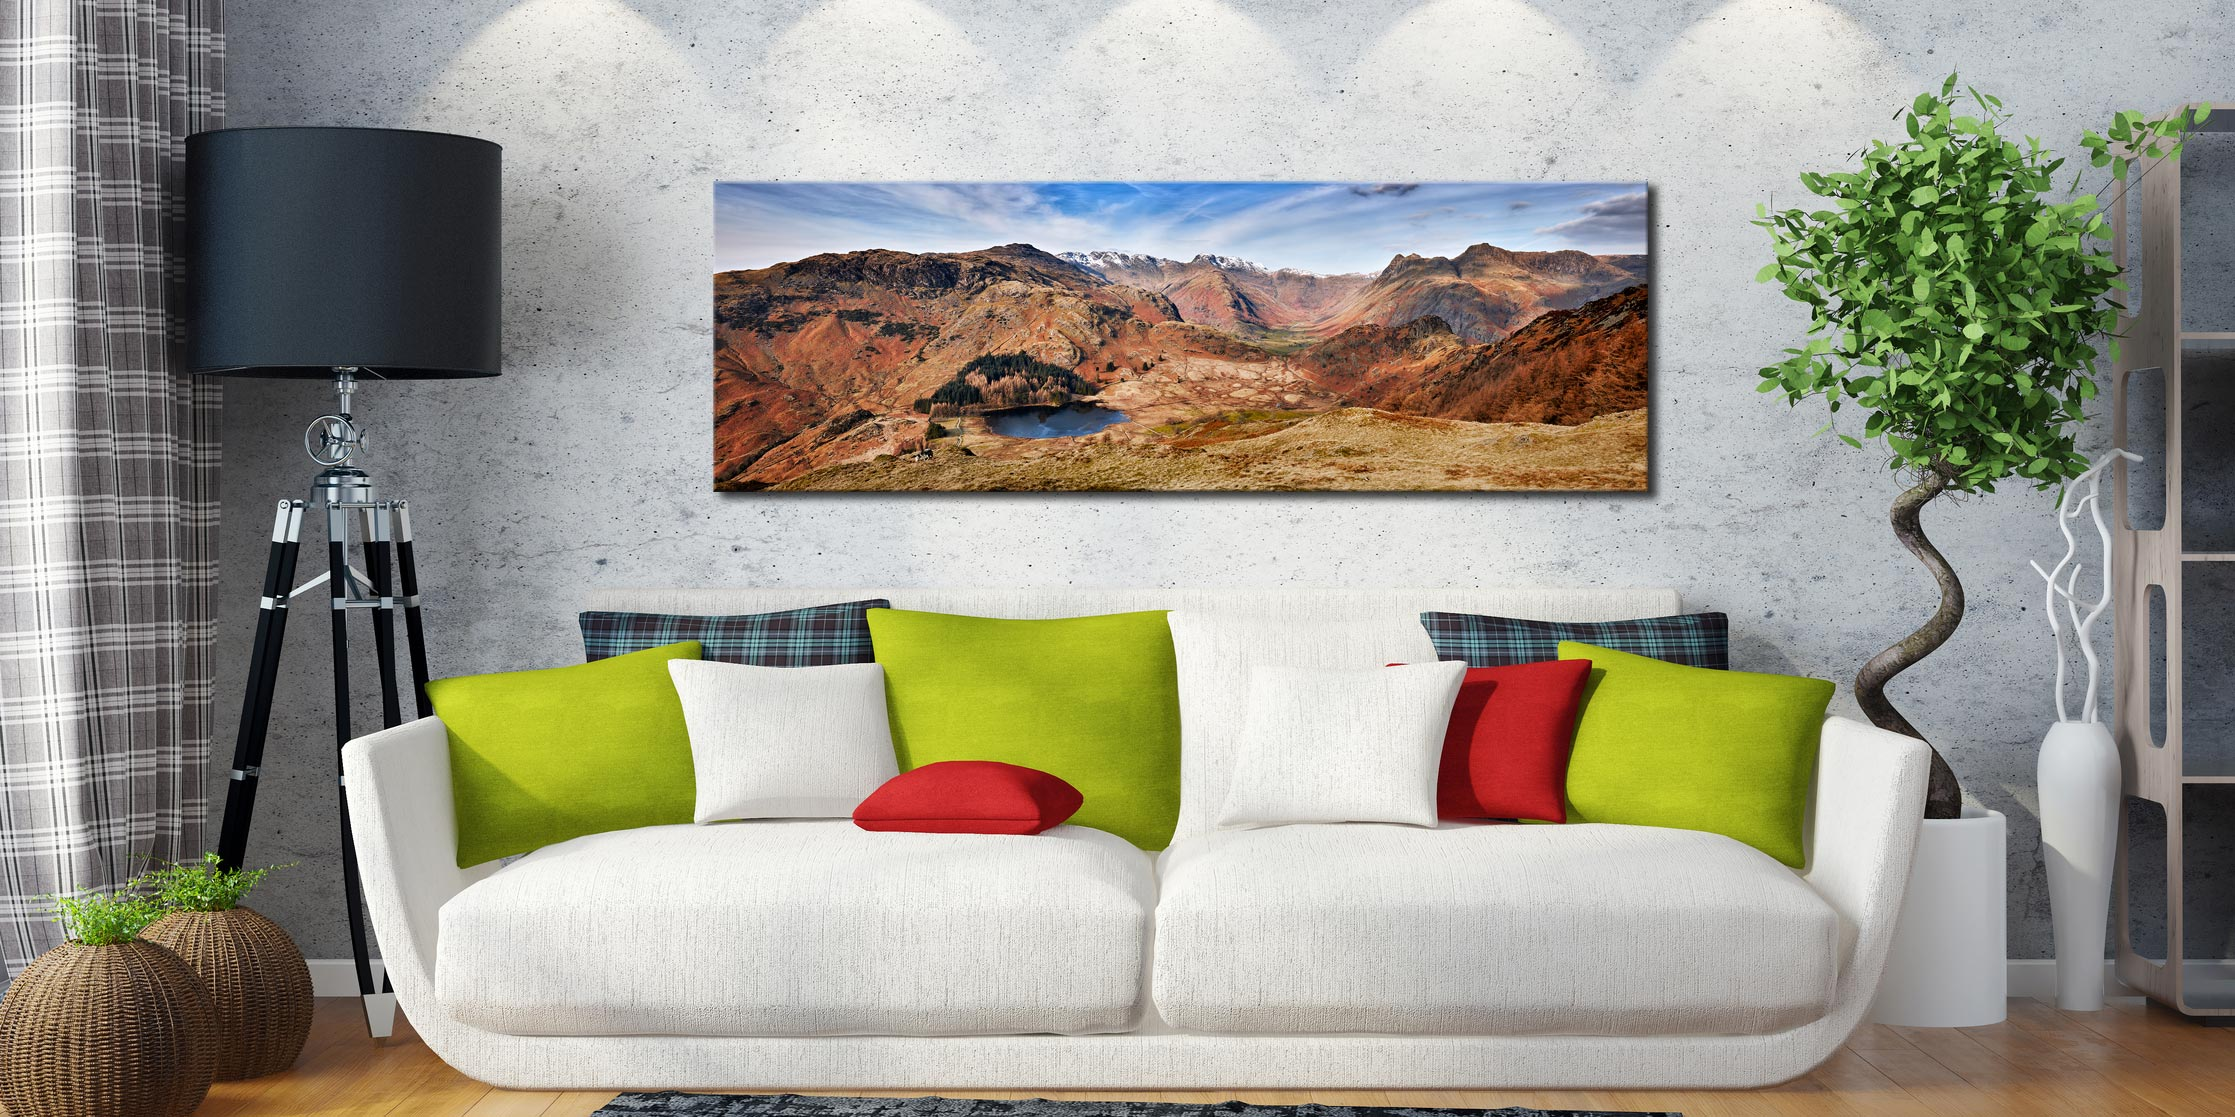 Lingmoor Fell Panorama - Print Aluminium Backing With Acrylic Glazing on Wall